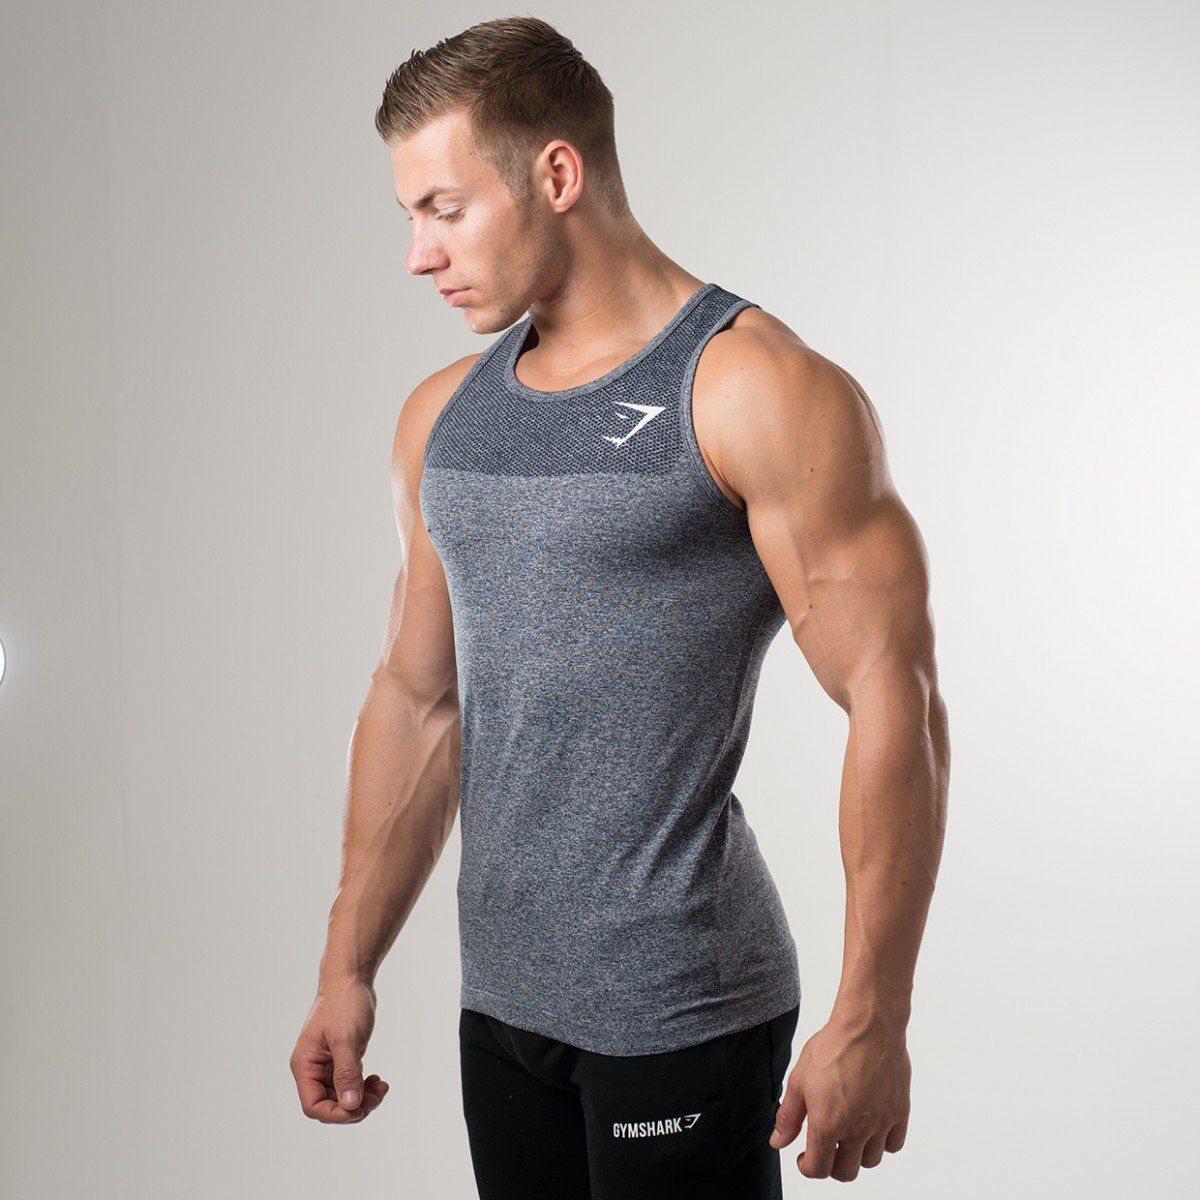 fdcc53758e88d Gymshark Phantom Seamless Tank - Charcoal - New Releases - Featured - Mens